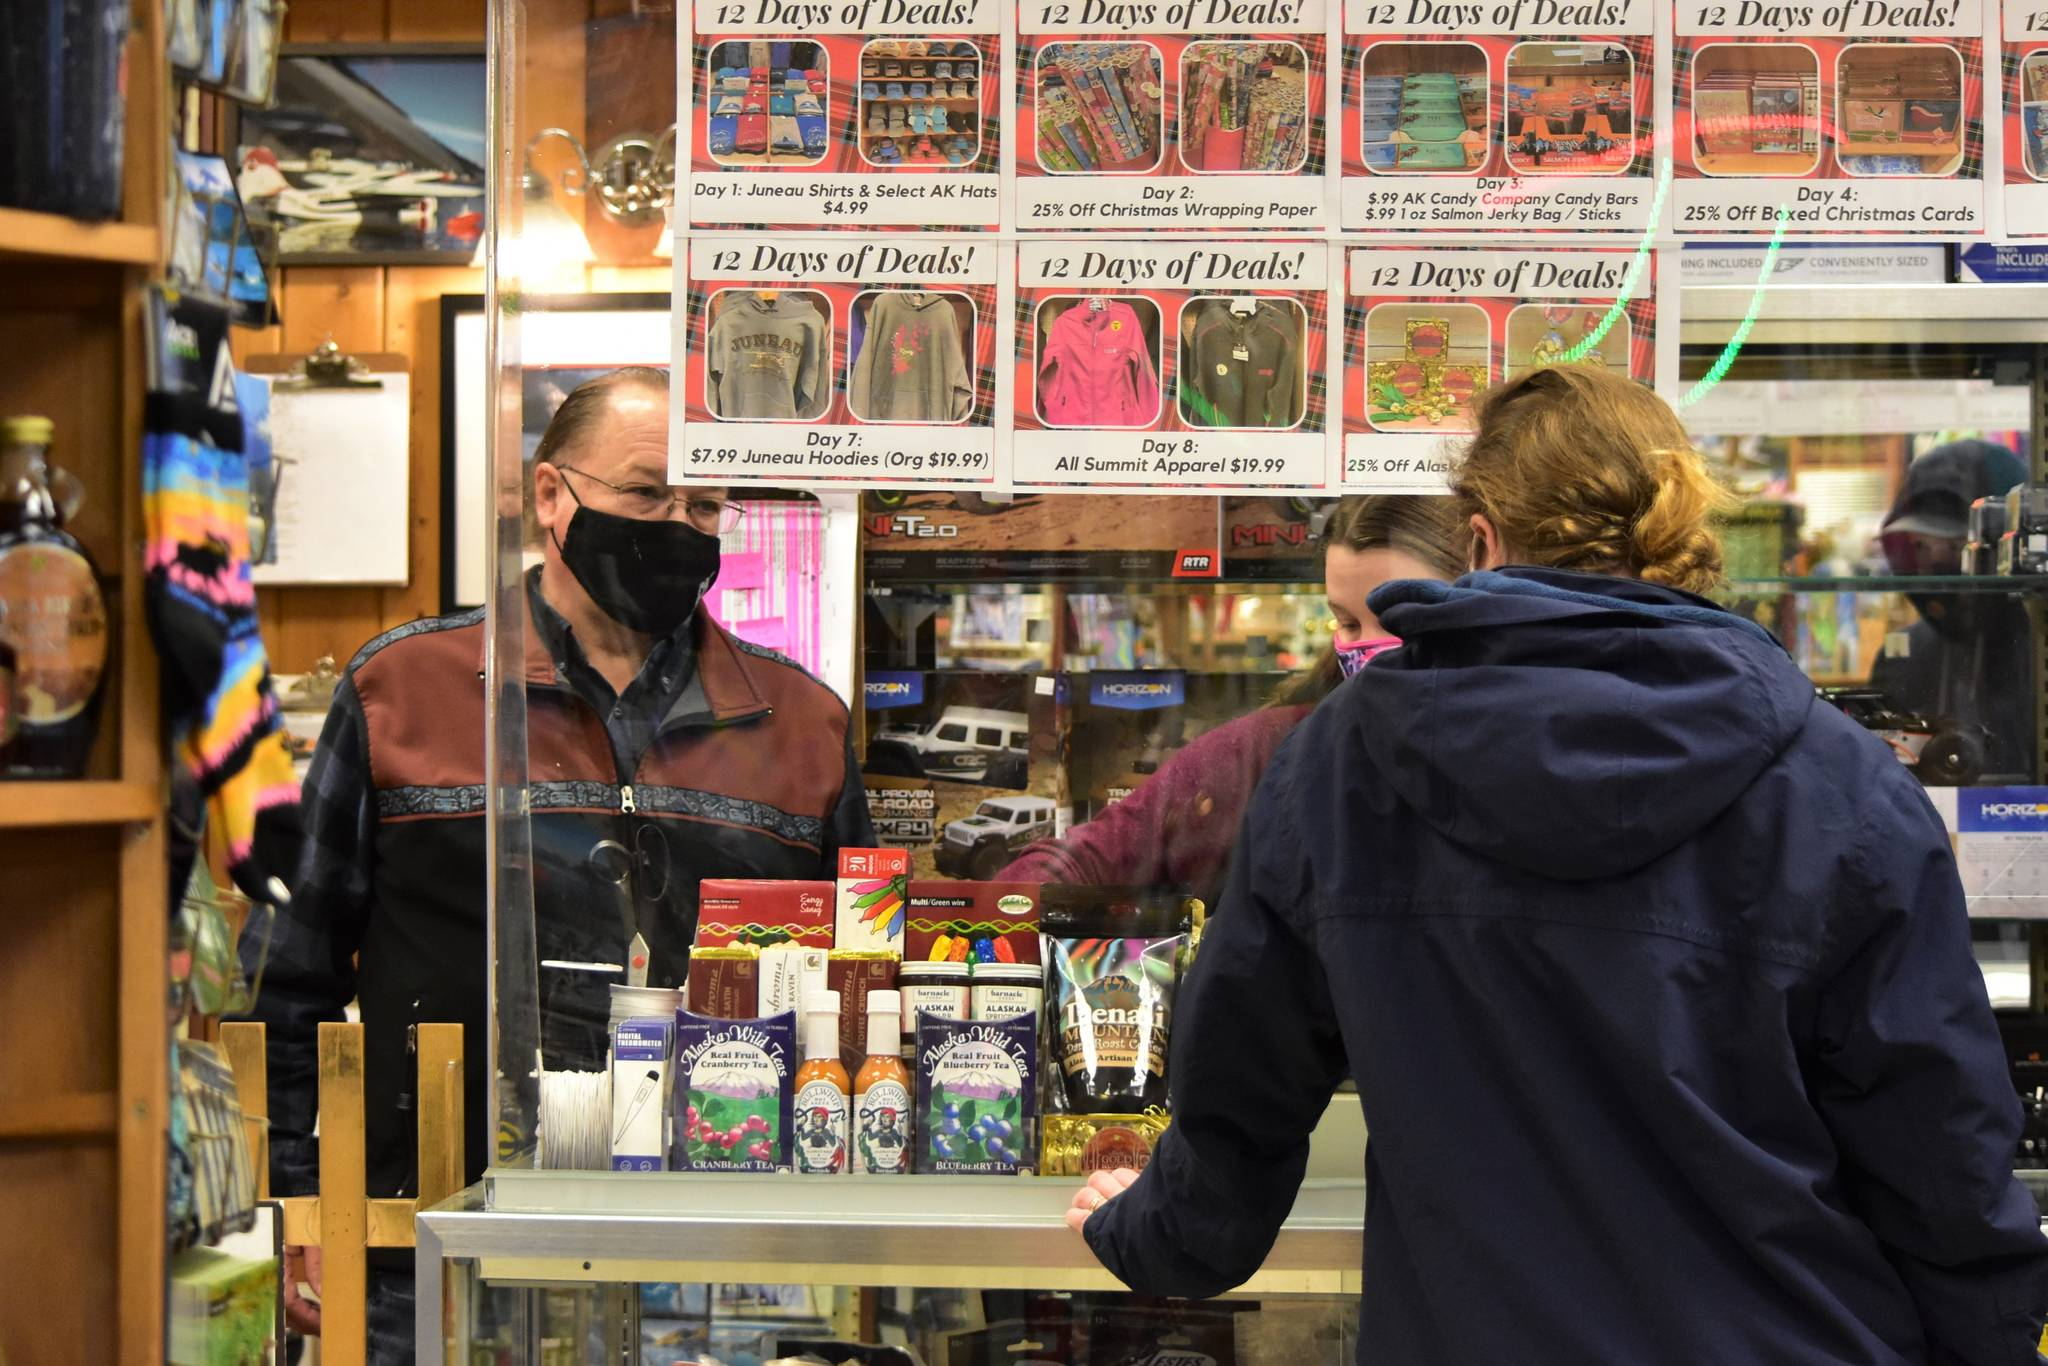 Mike Wiley, left, and daughter Megan Bishop serve a customer at their store, Ben Franklin Store, in downtown Juneau on Tuesday, Dec. 15, 2020. The city extended its mask mandate at a meeting Monday, but Wiley and Bishop said they'd ask customers to wear a mask regardless of the mandate. (Peter Segall / Juneau Empire)